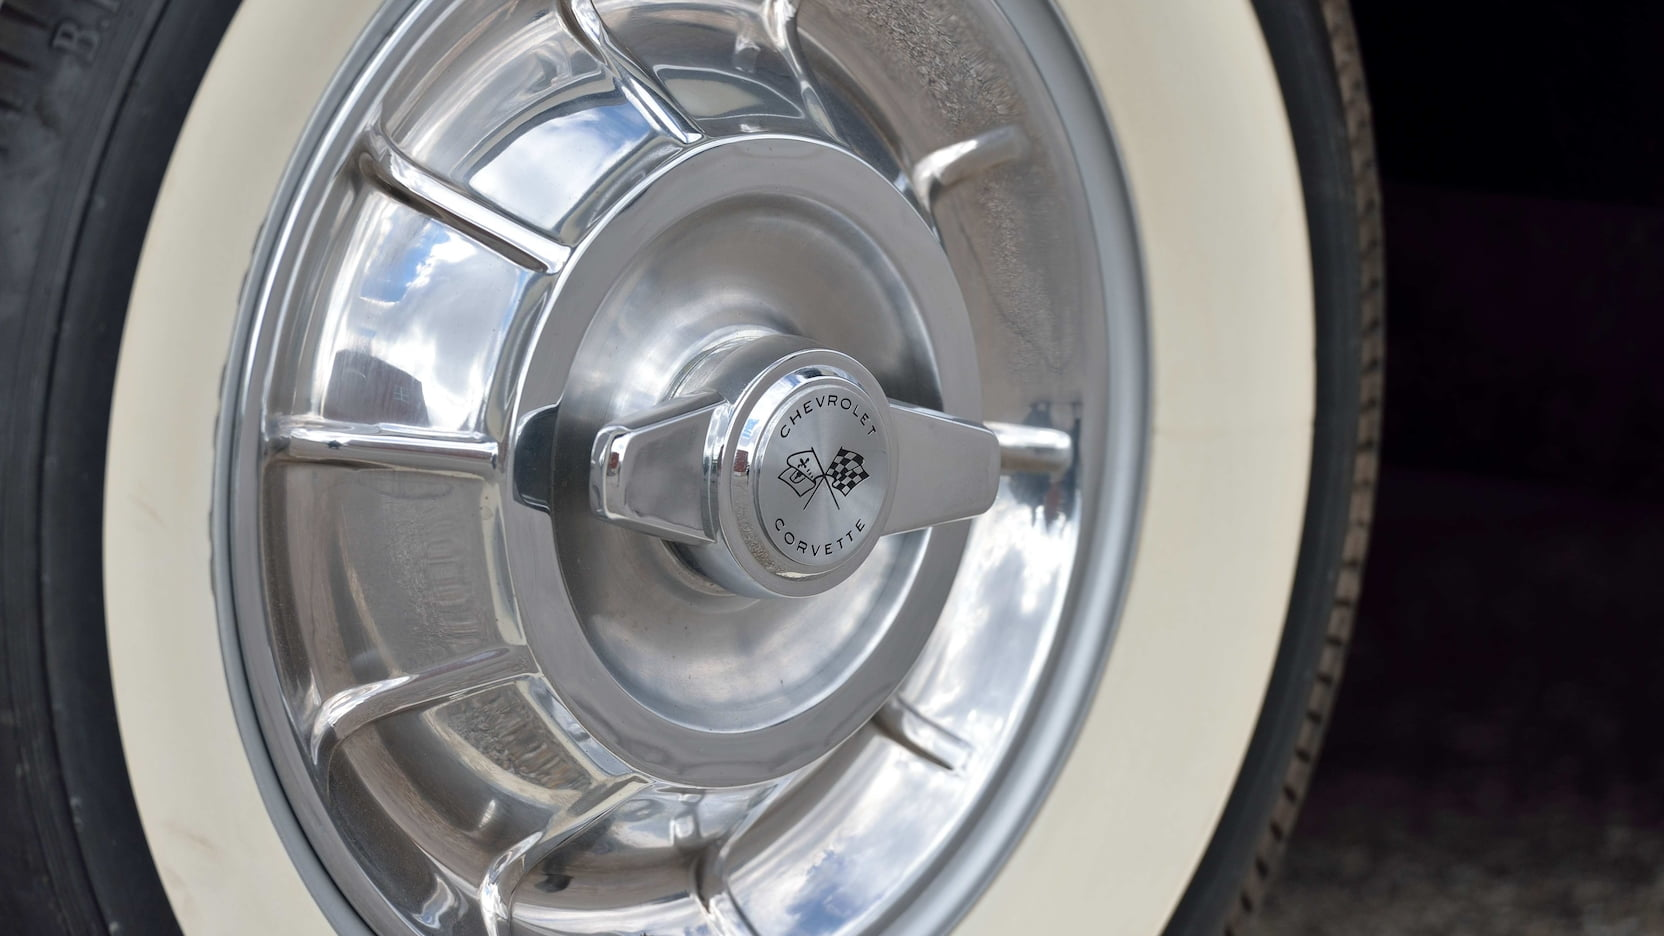 1958 Chitwood Thrill Show Corvette Convertible Wheel Detail